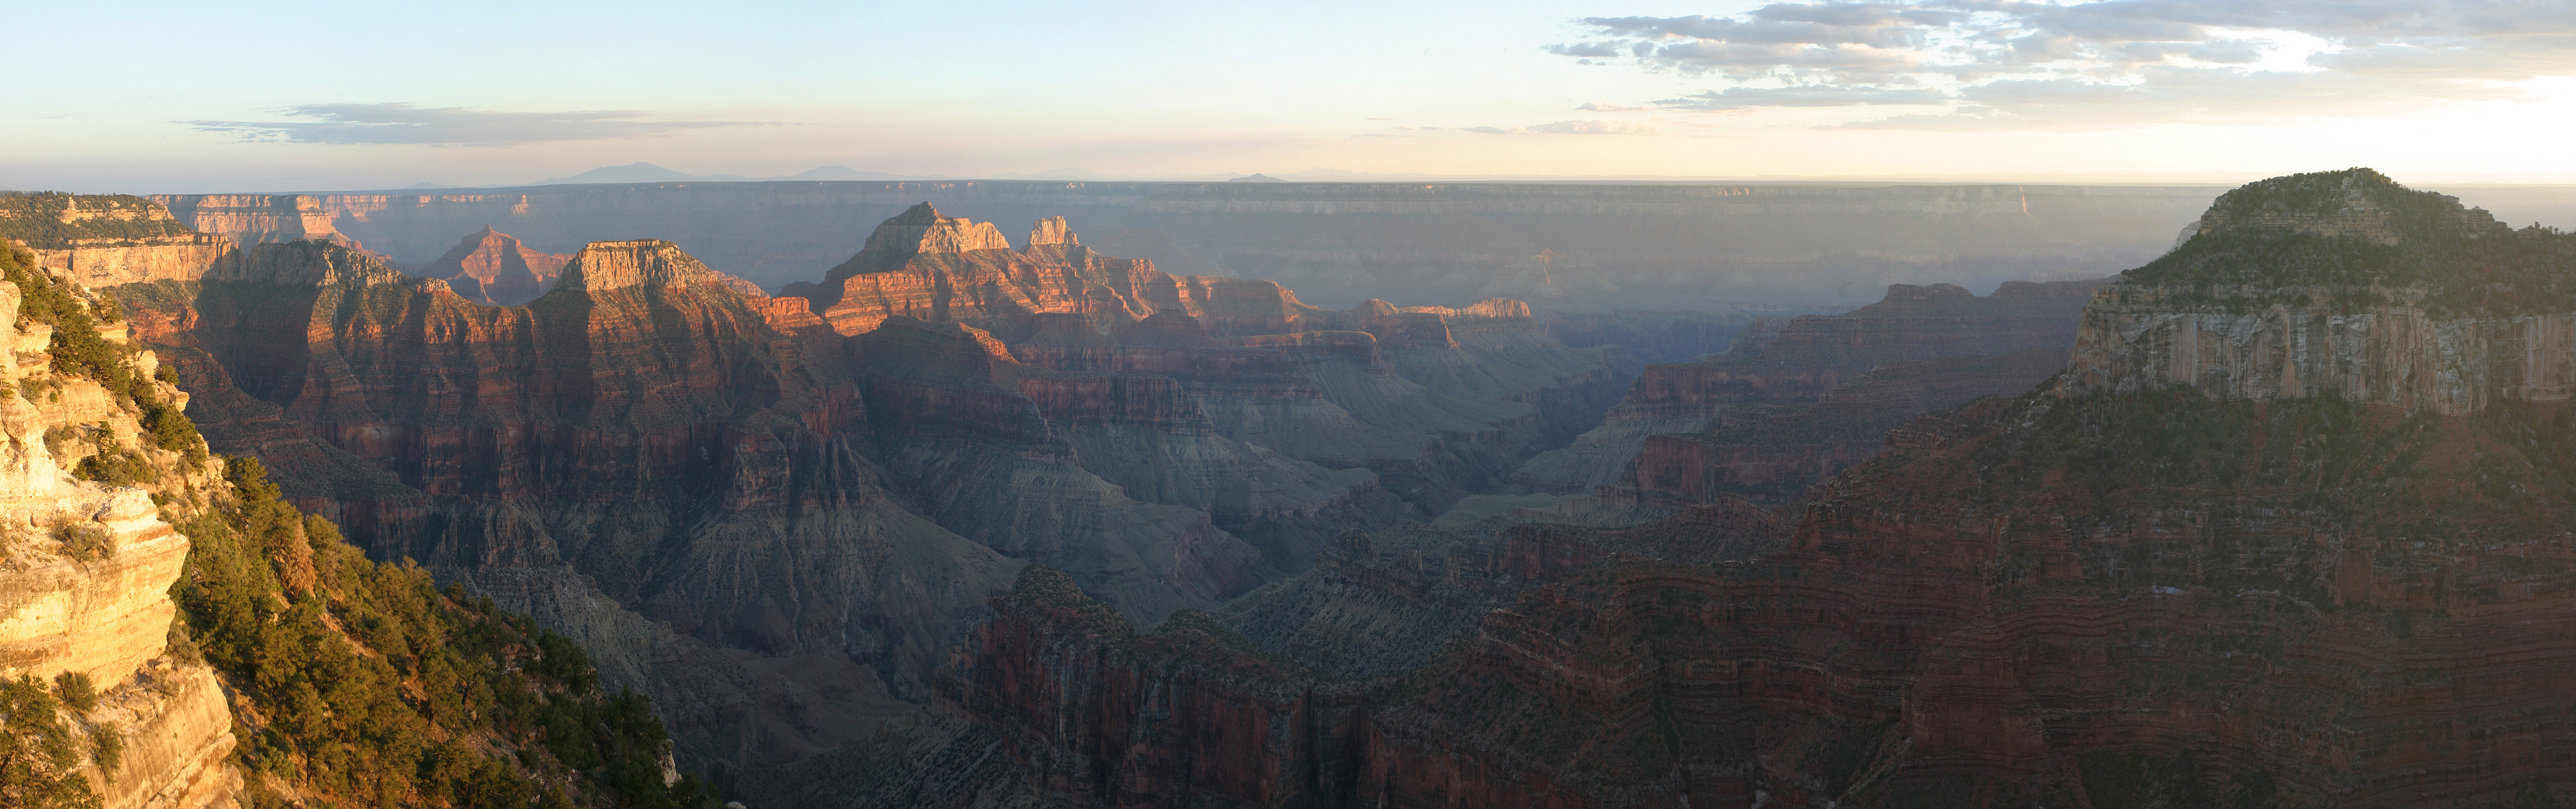 A panoramic view of the Grand Canyon from the North Rim. Photo taken on September 26, 2004.